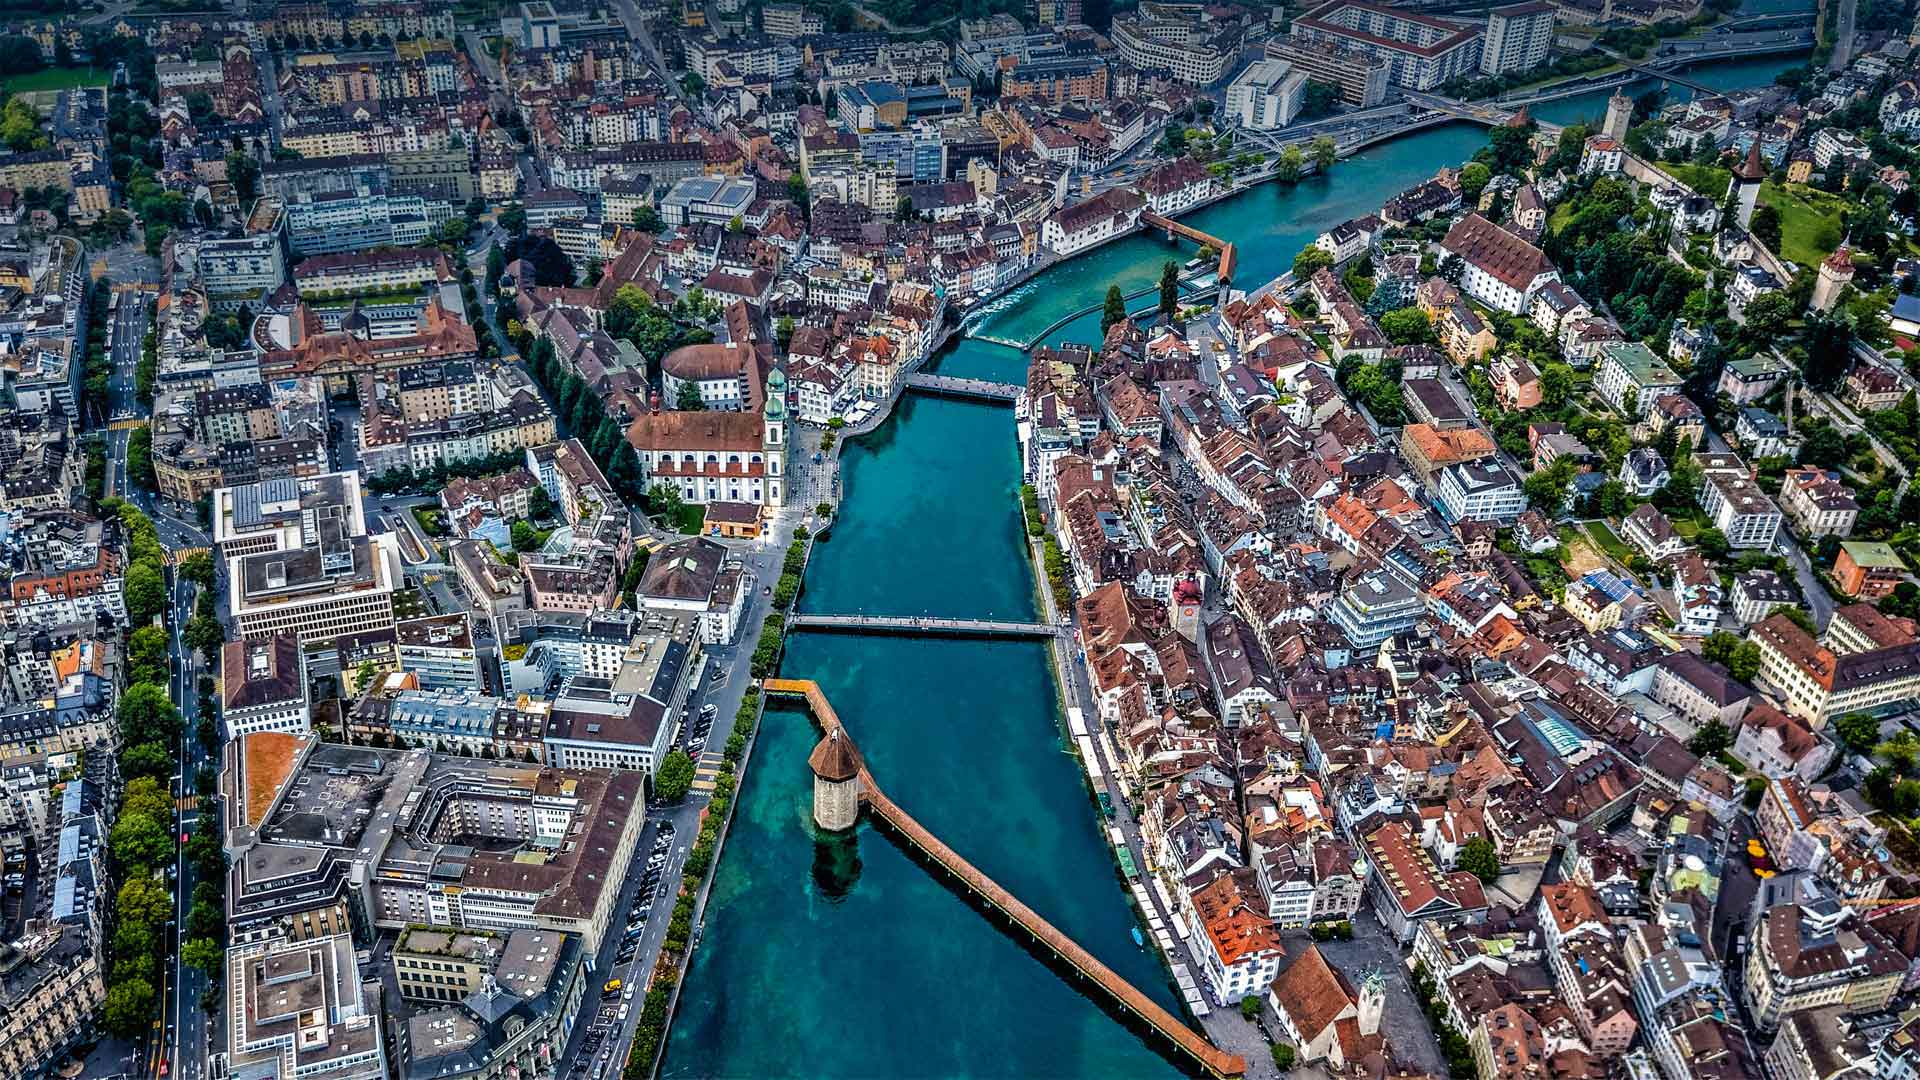 Aerial view of Chapel Bridge over the River Reuss in Lucerne, Switzerland (© Neleman Initiative/Gallery Stock)(Bing United States)